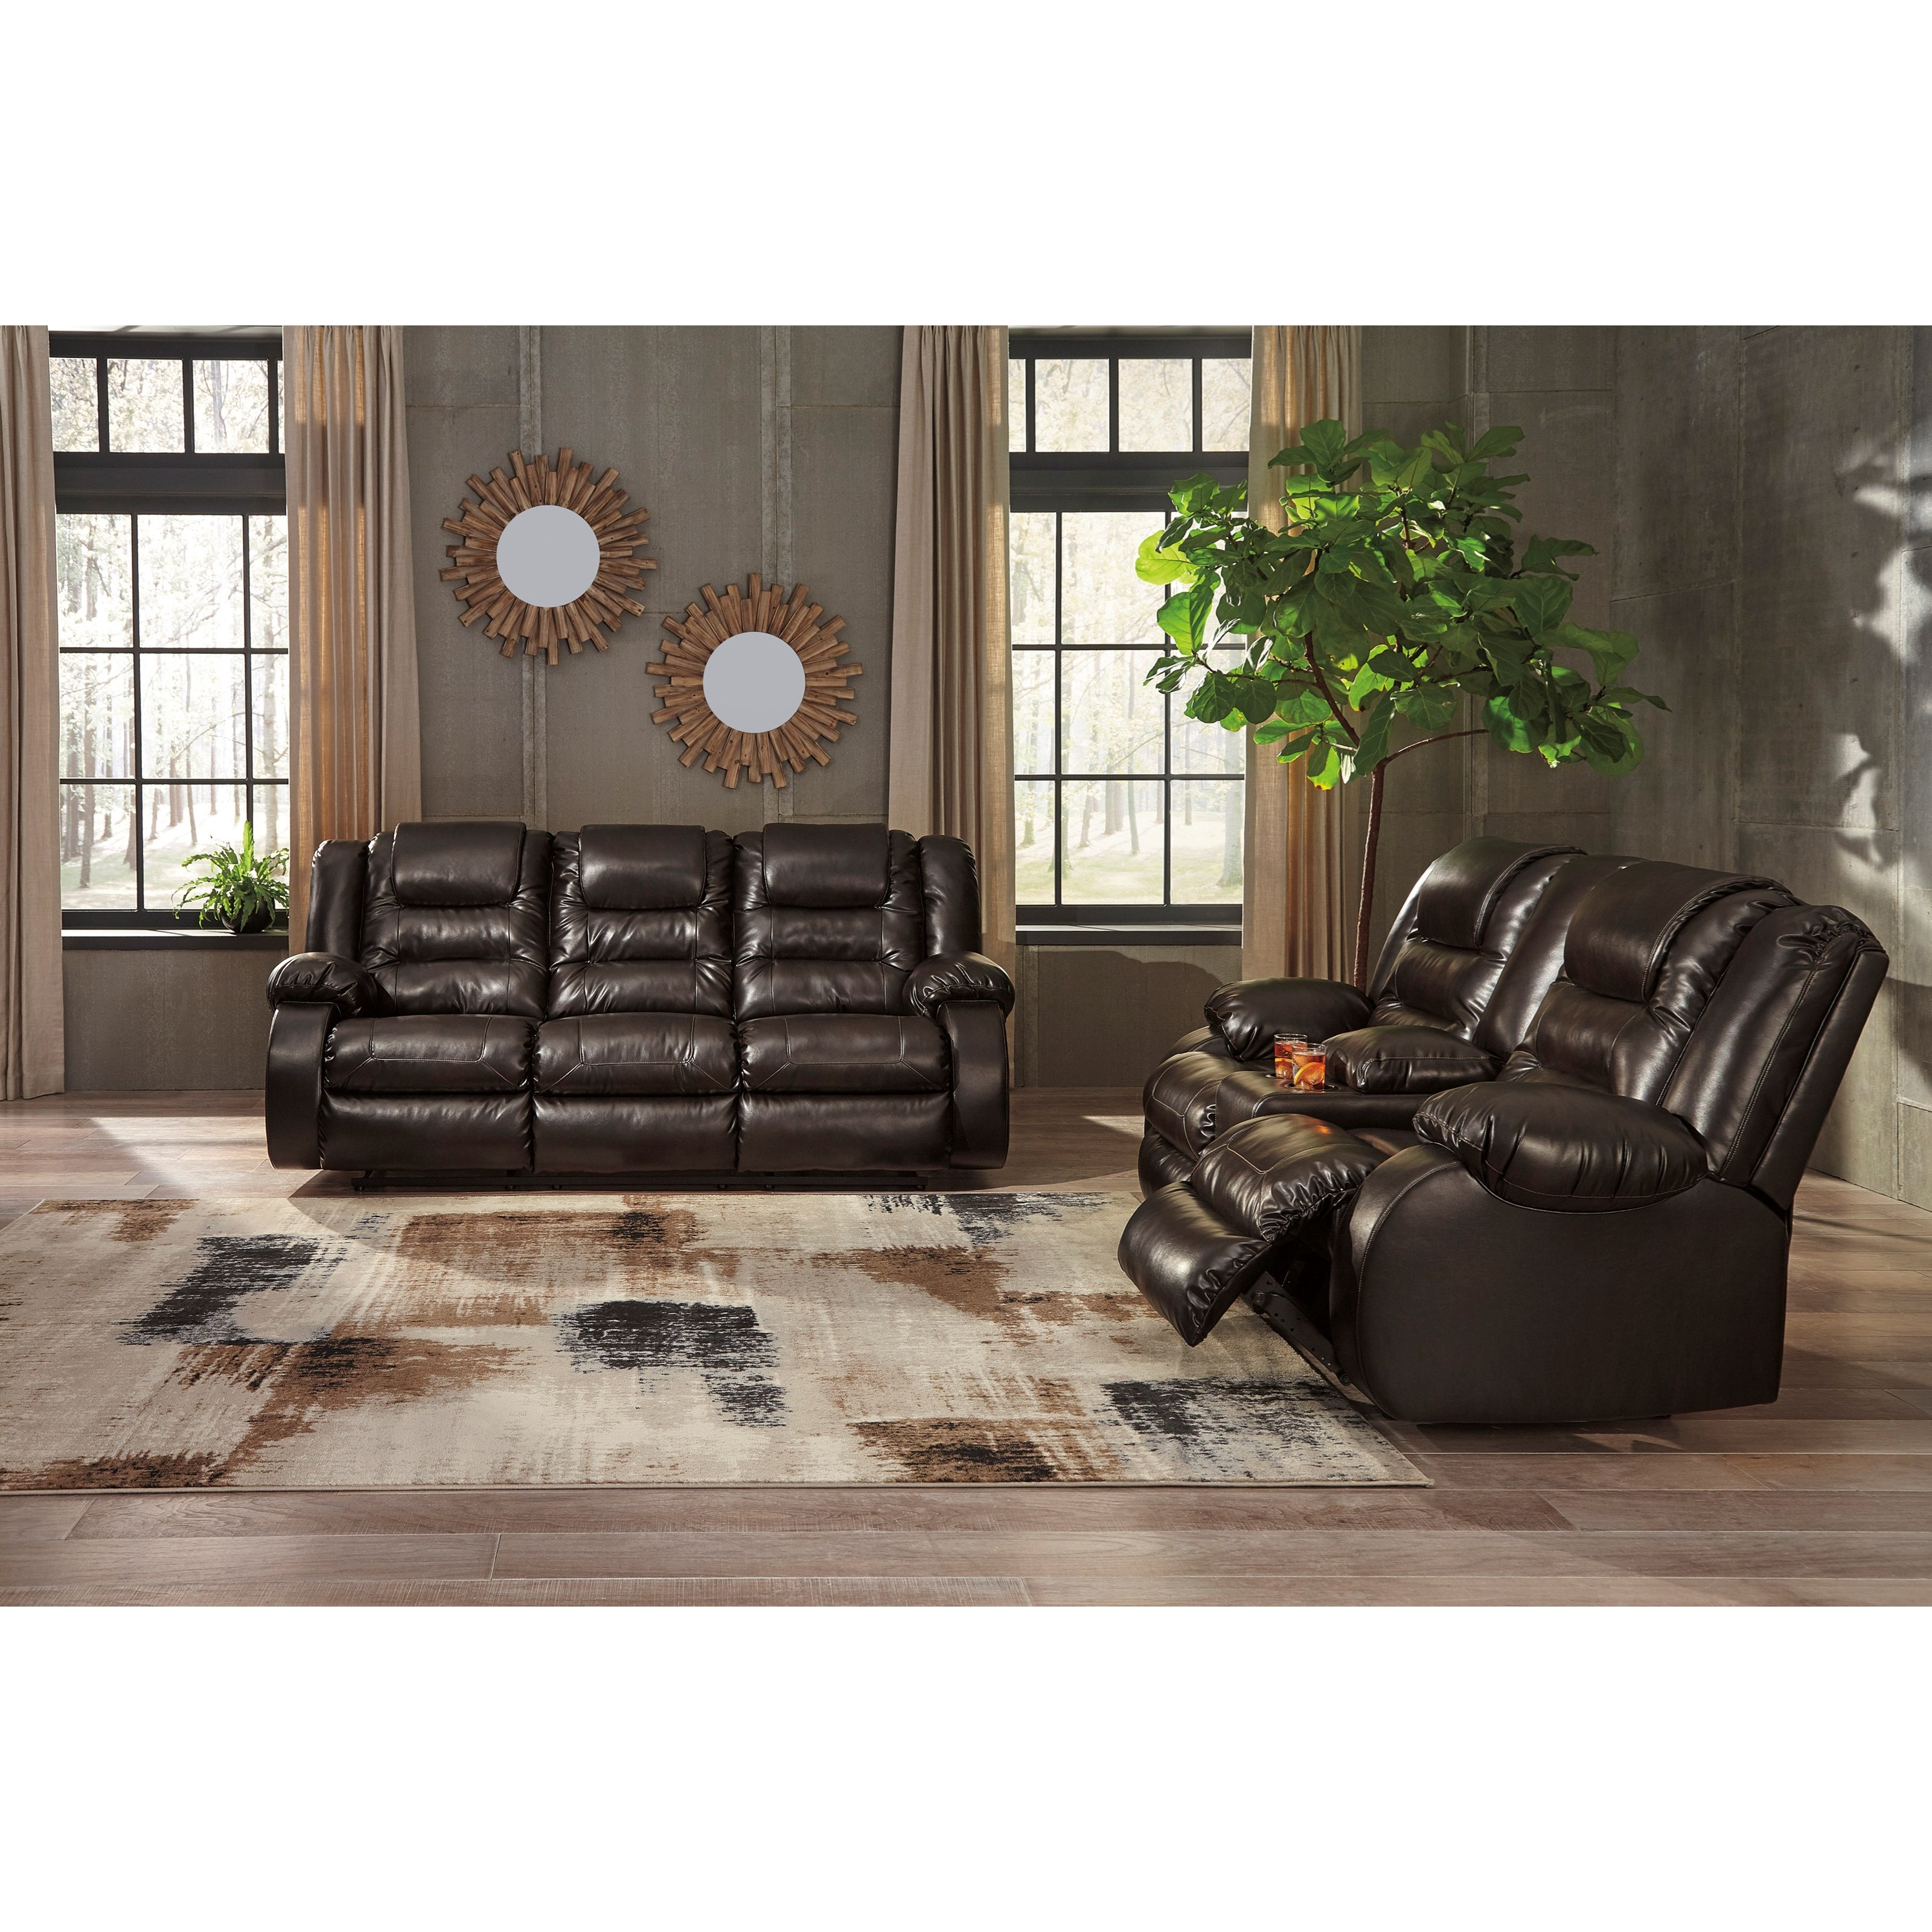 Signature Design By Ashley Vacherie Reclining Living Room